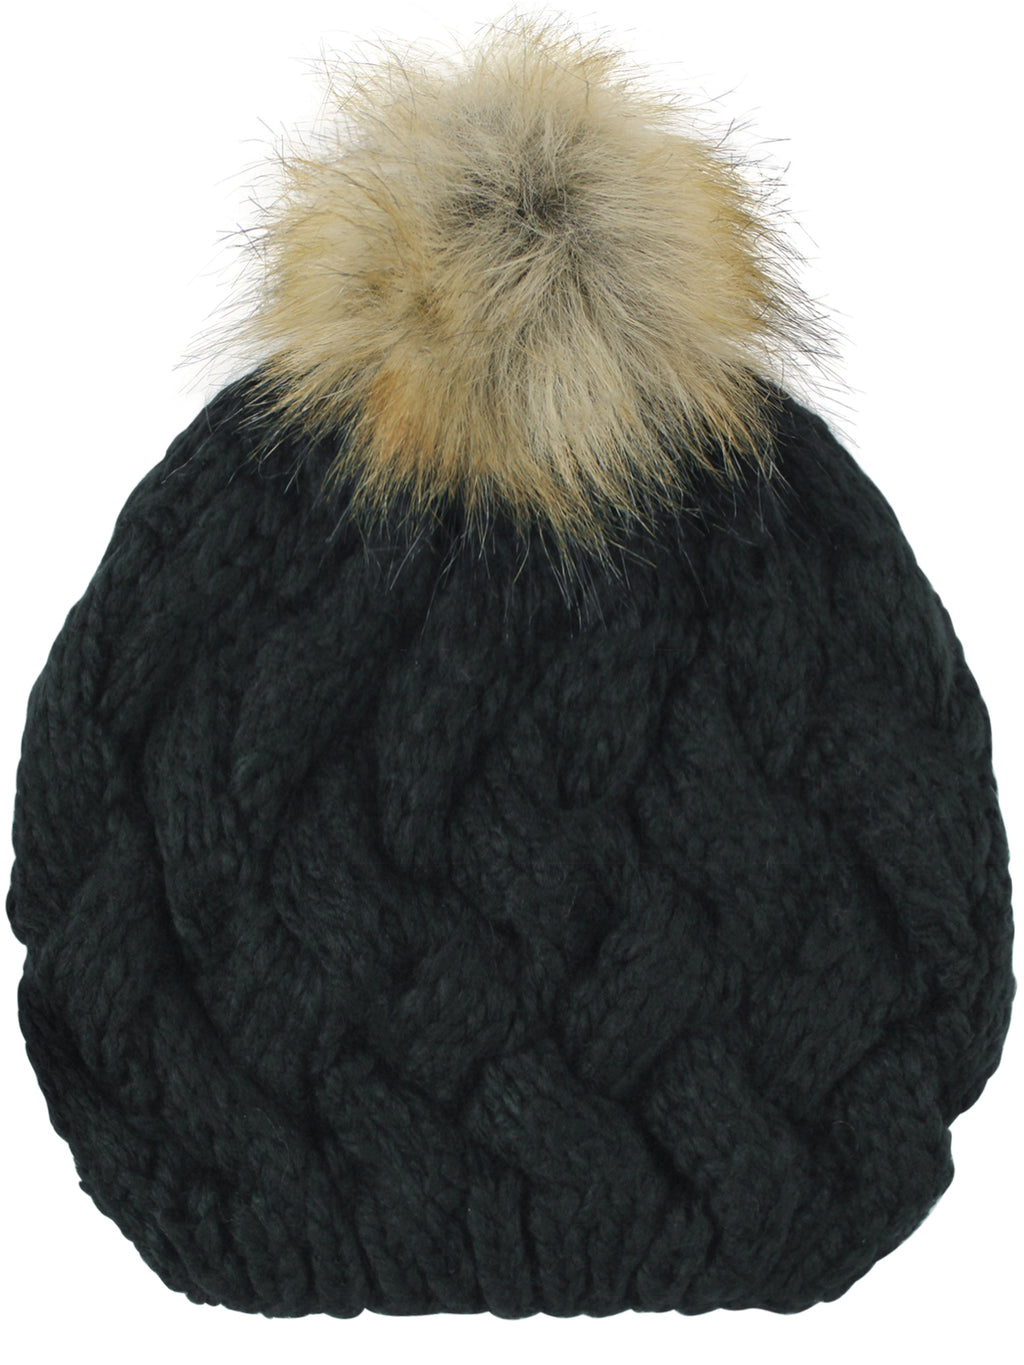 Black Knit Beret Beanie Hat With Fur Pom Pom